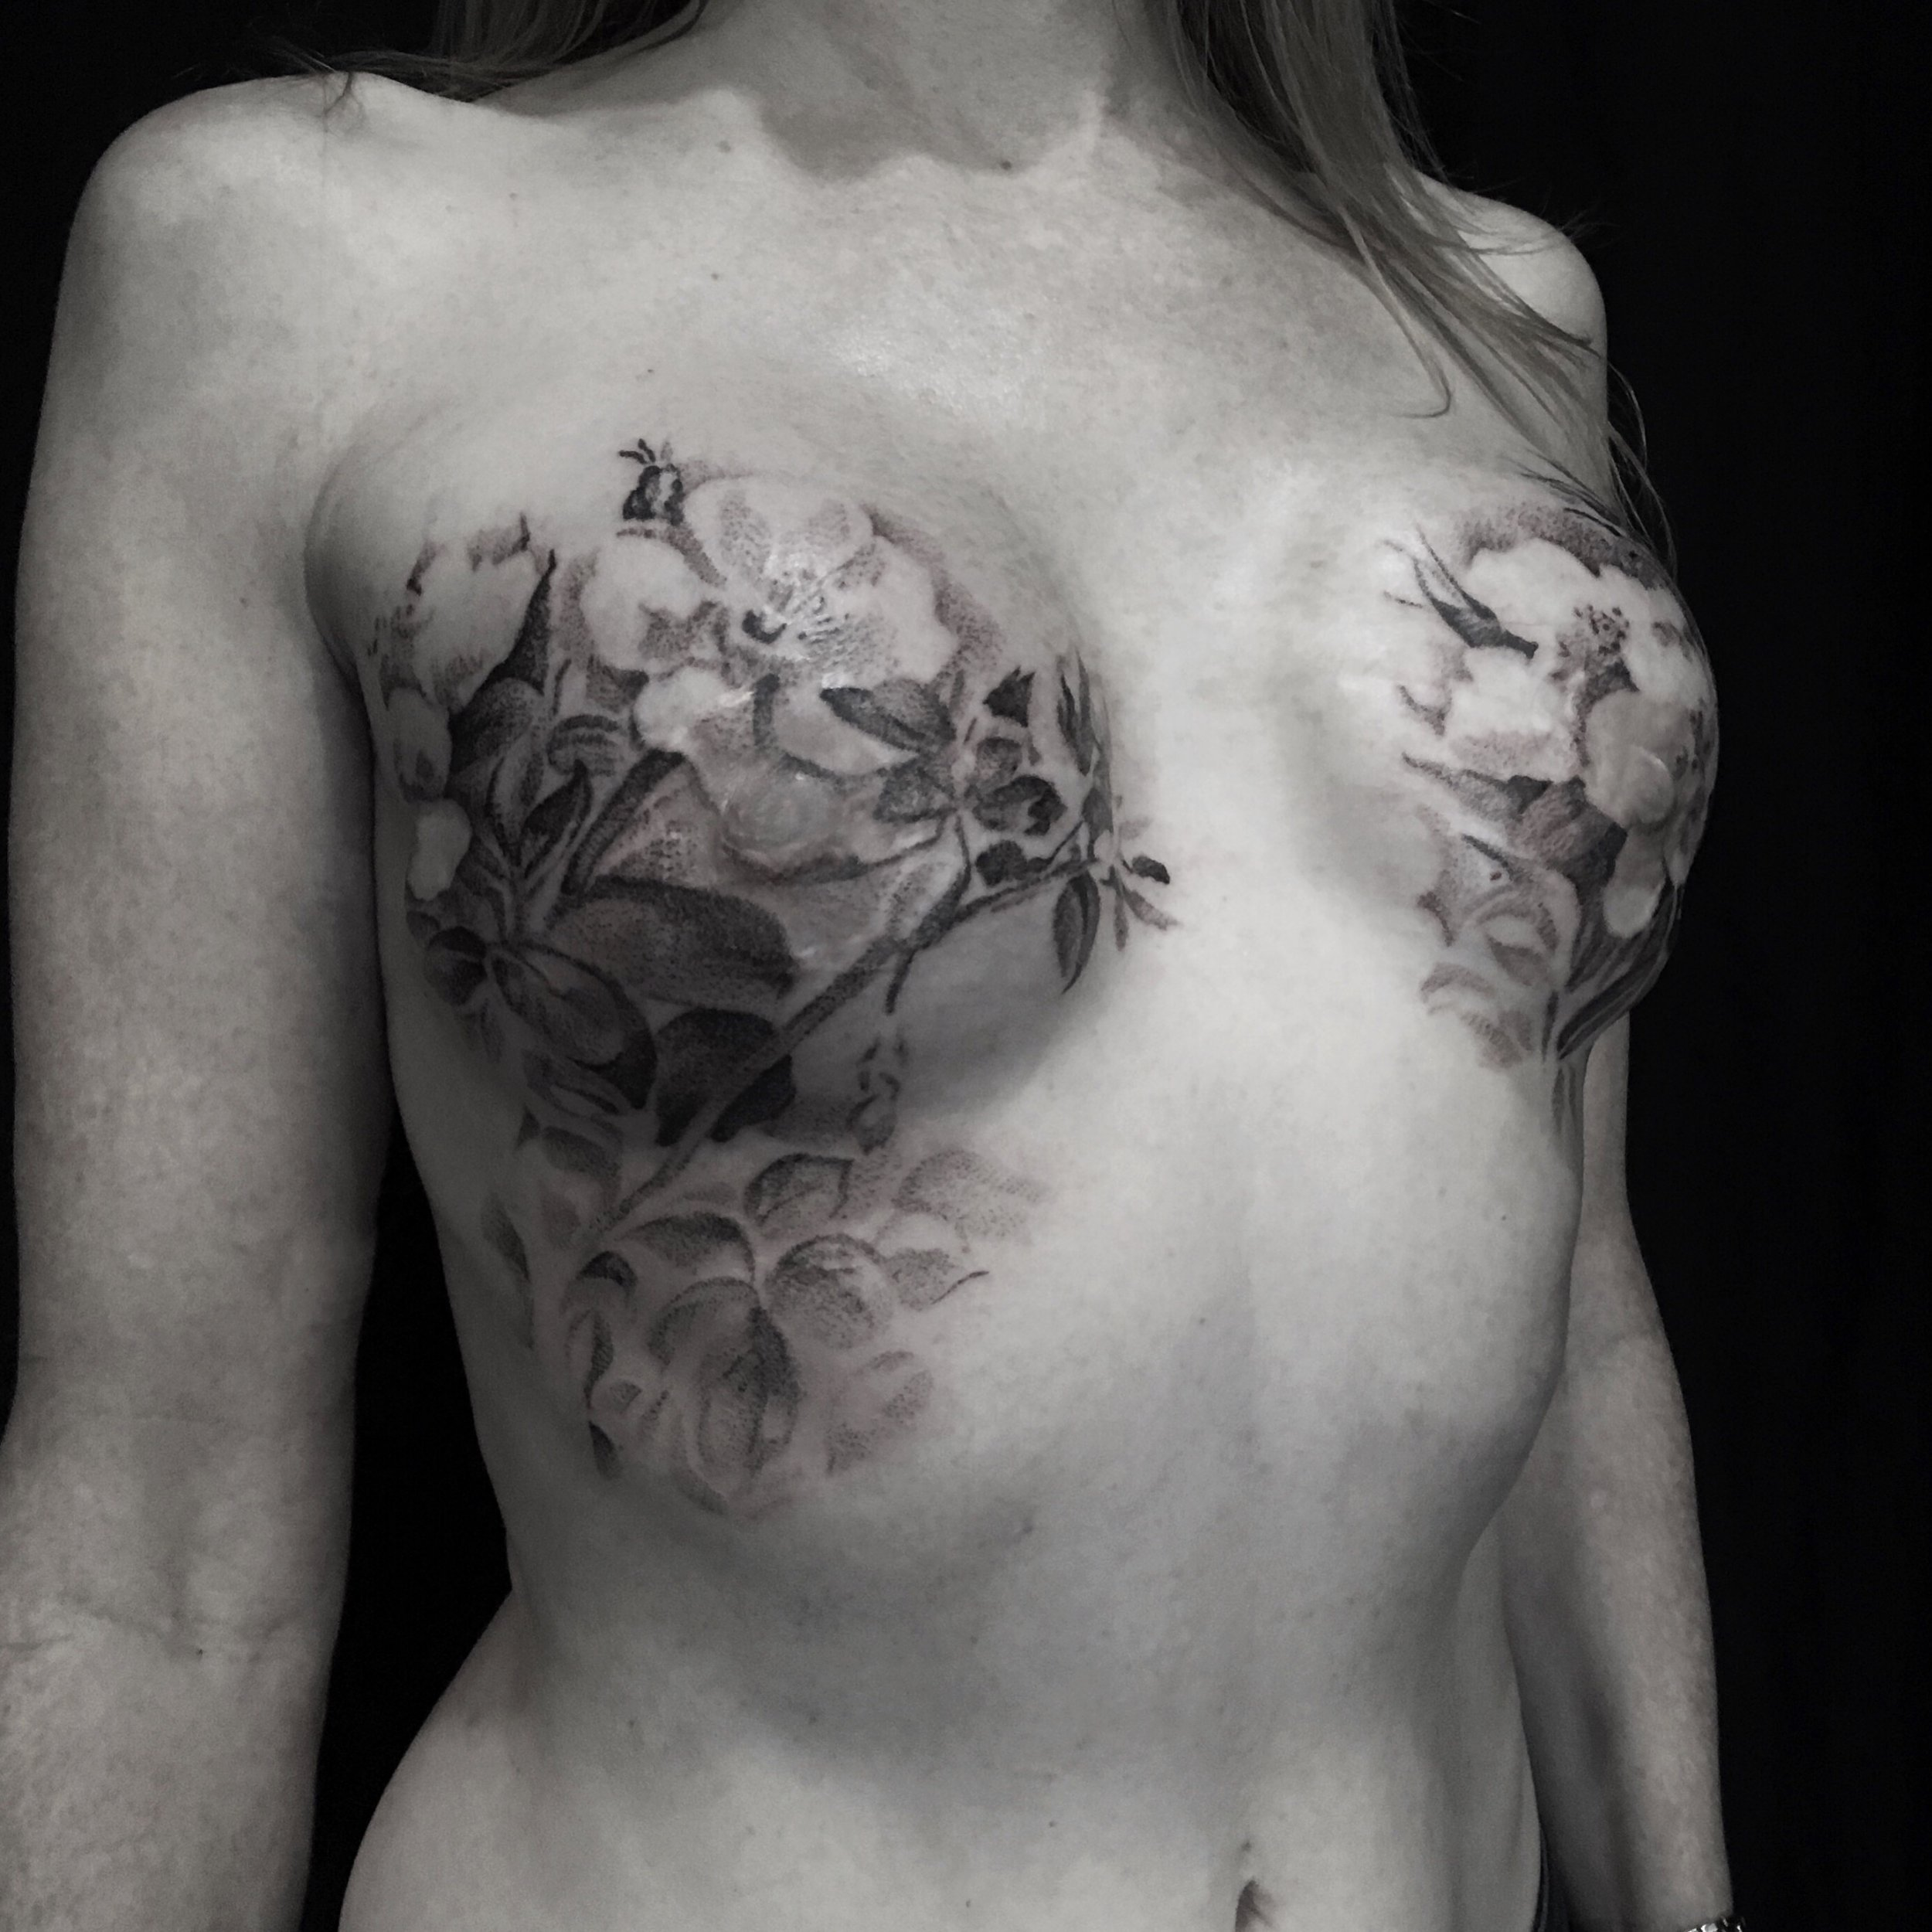 03_31_mastectomy_tattoo_03